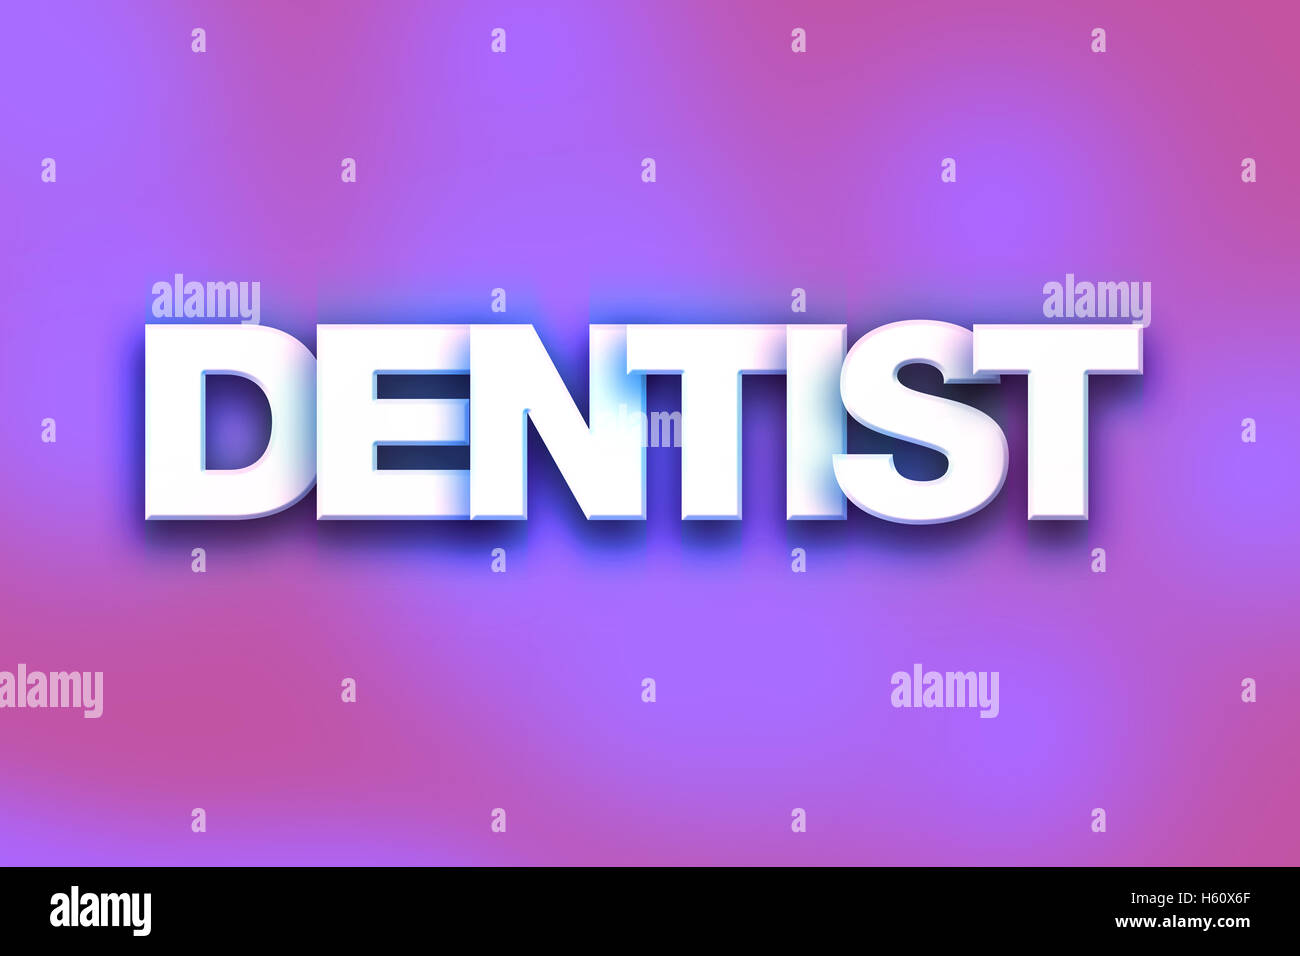 dentist letters